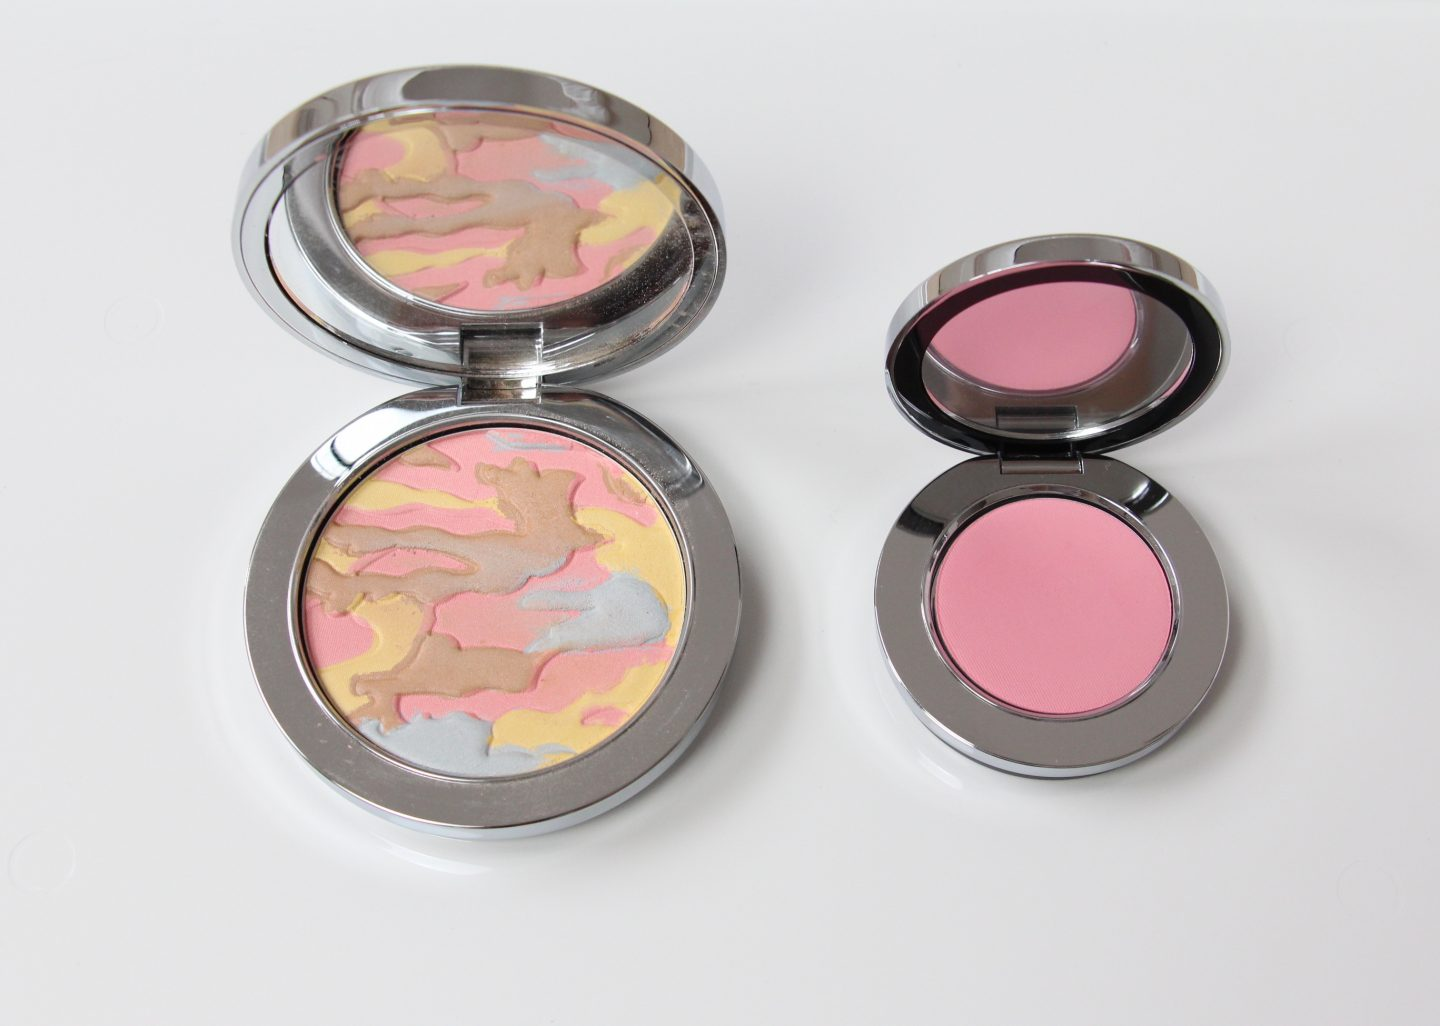 Rodial Makeup Soft Focus Glow Powder and Blusher in South Beach